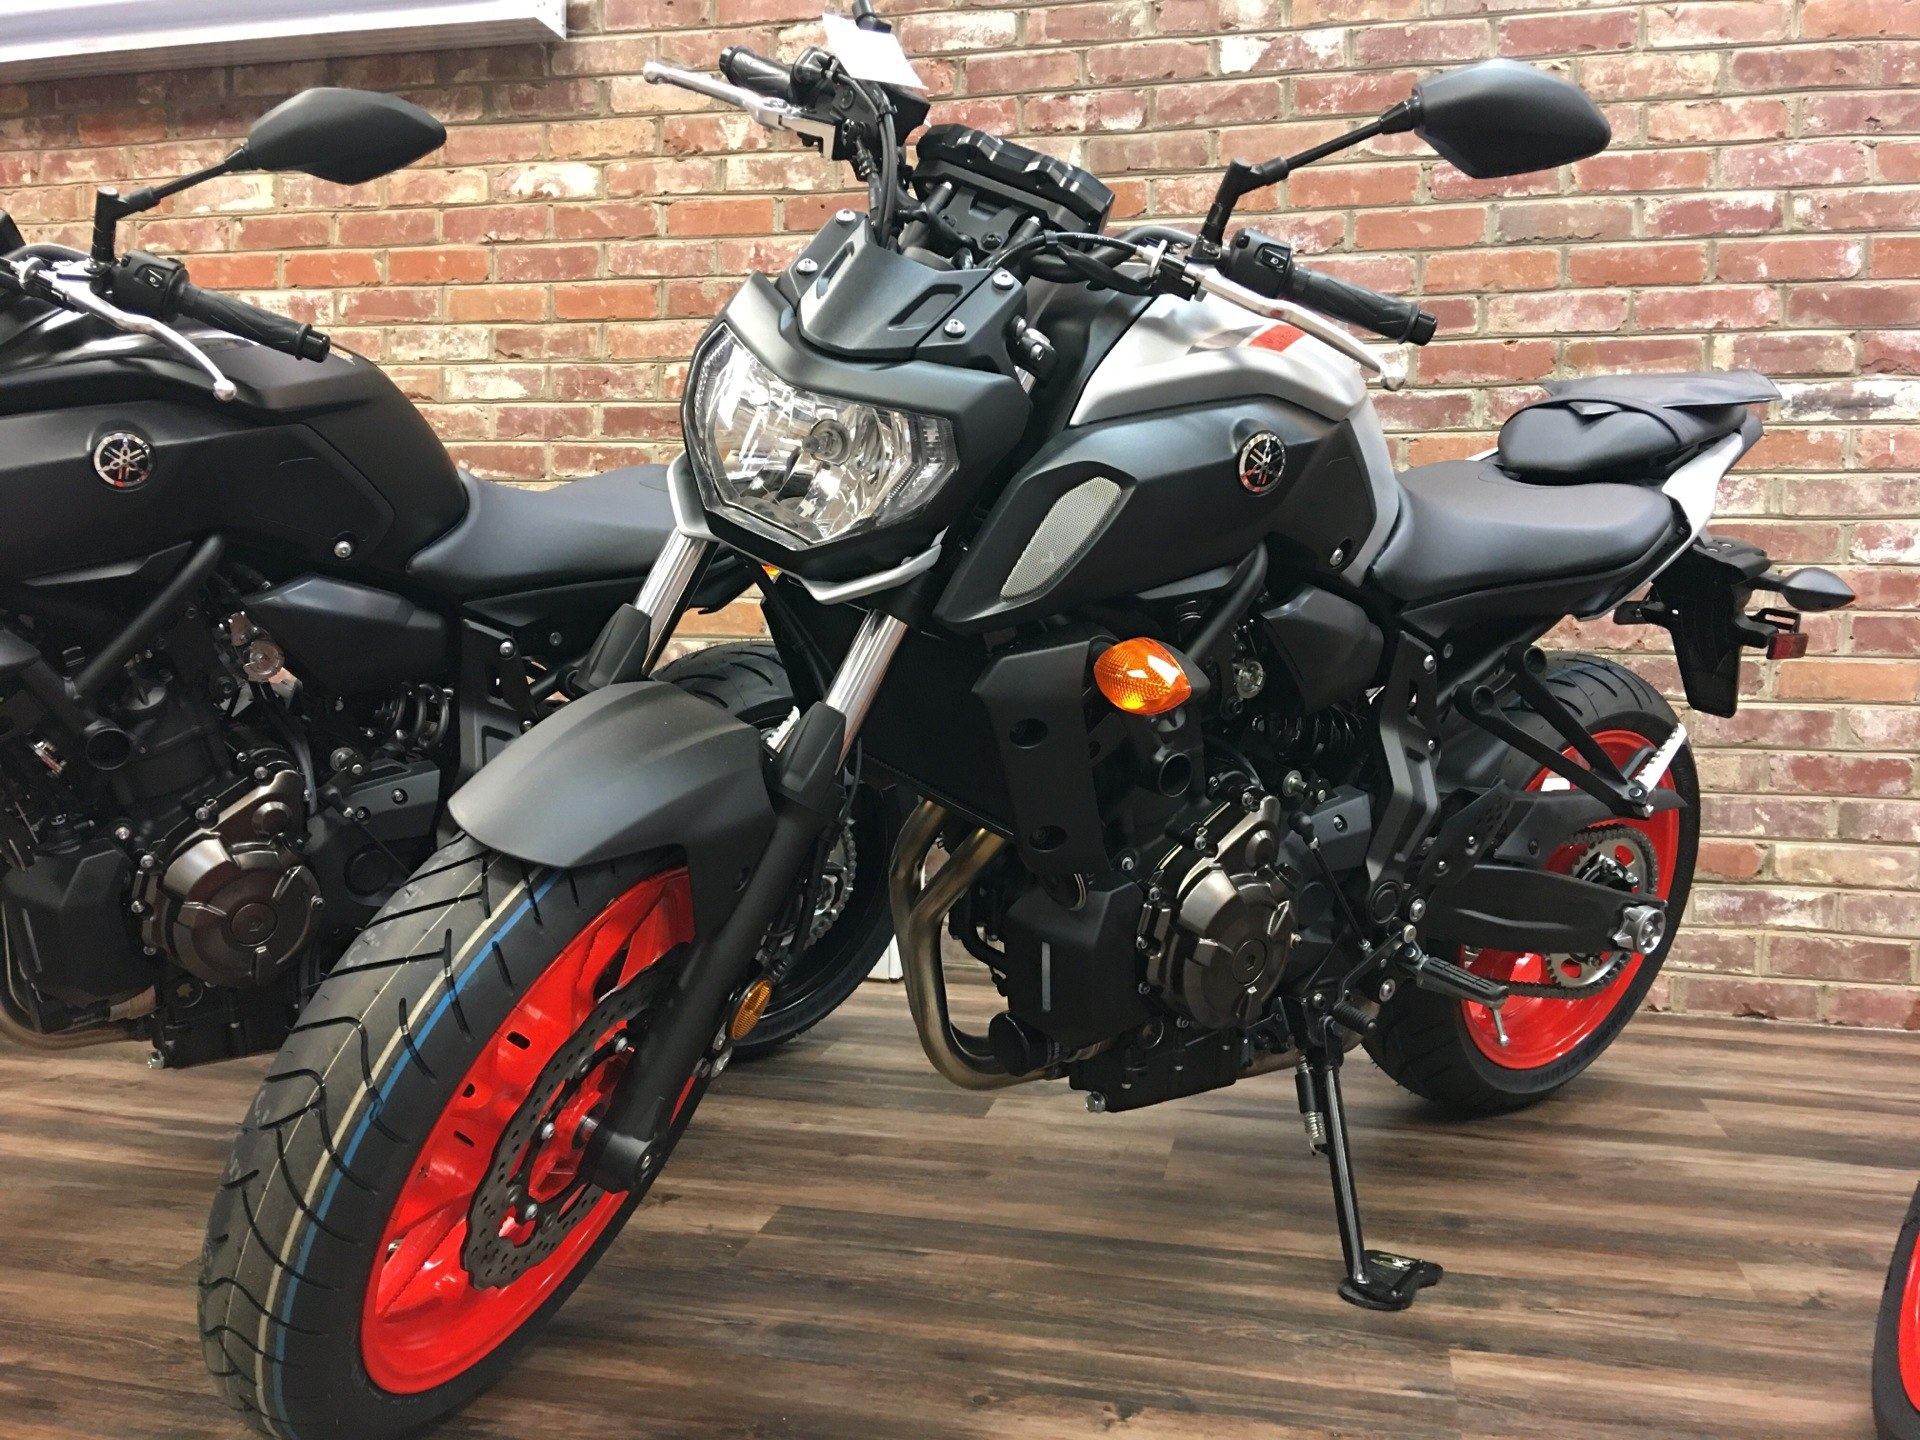 2020 Yamaha MT-07 in Statesville, North Carolina - Photo 1